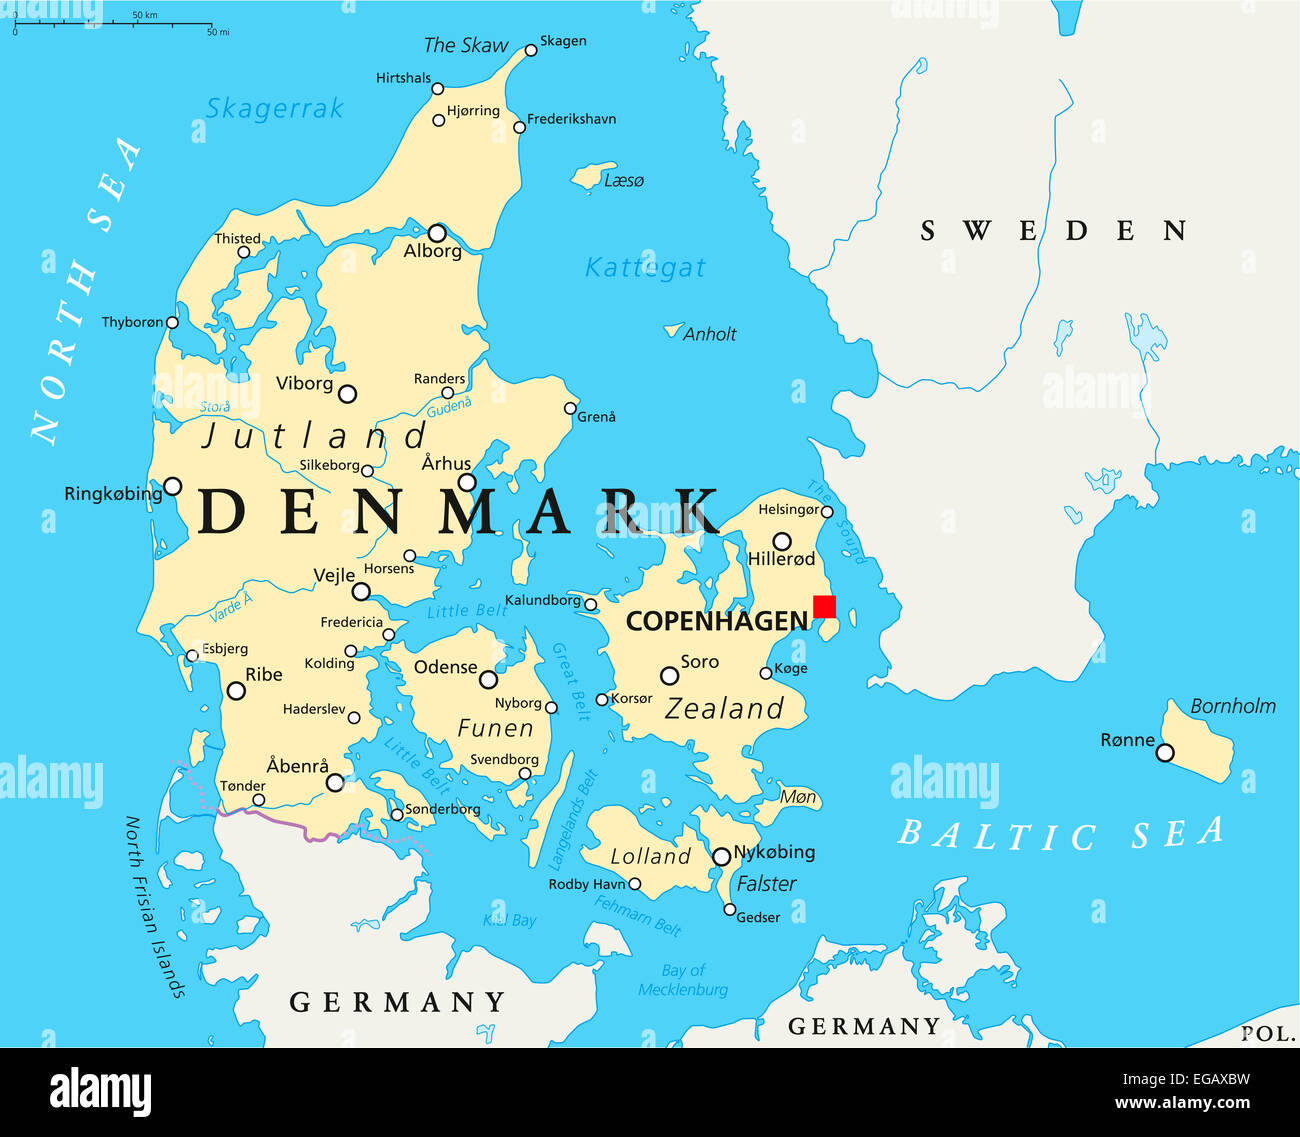 Denmark Political Map With Capital Copenhagen National Borders Stock Photo Royalty Free Image